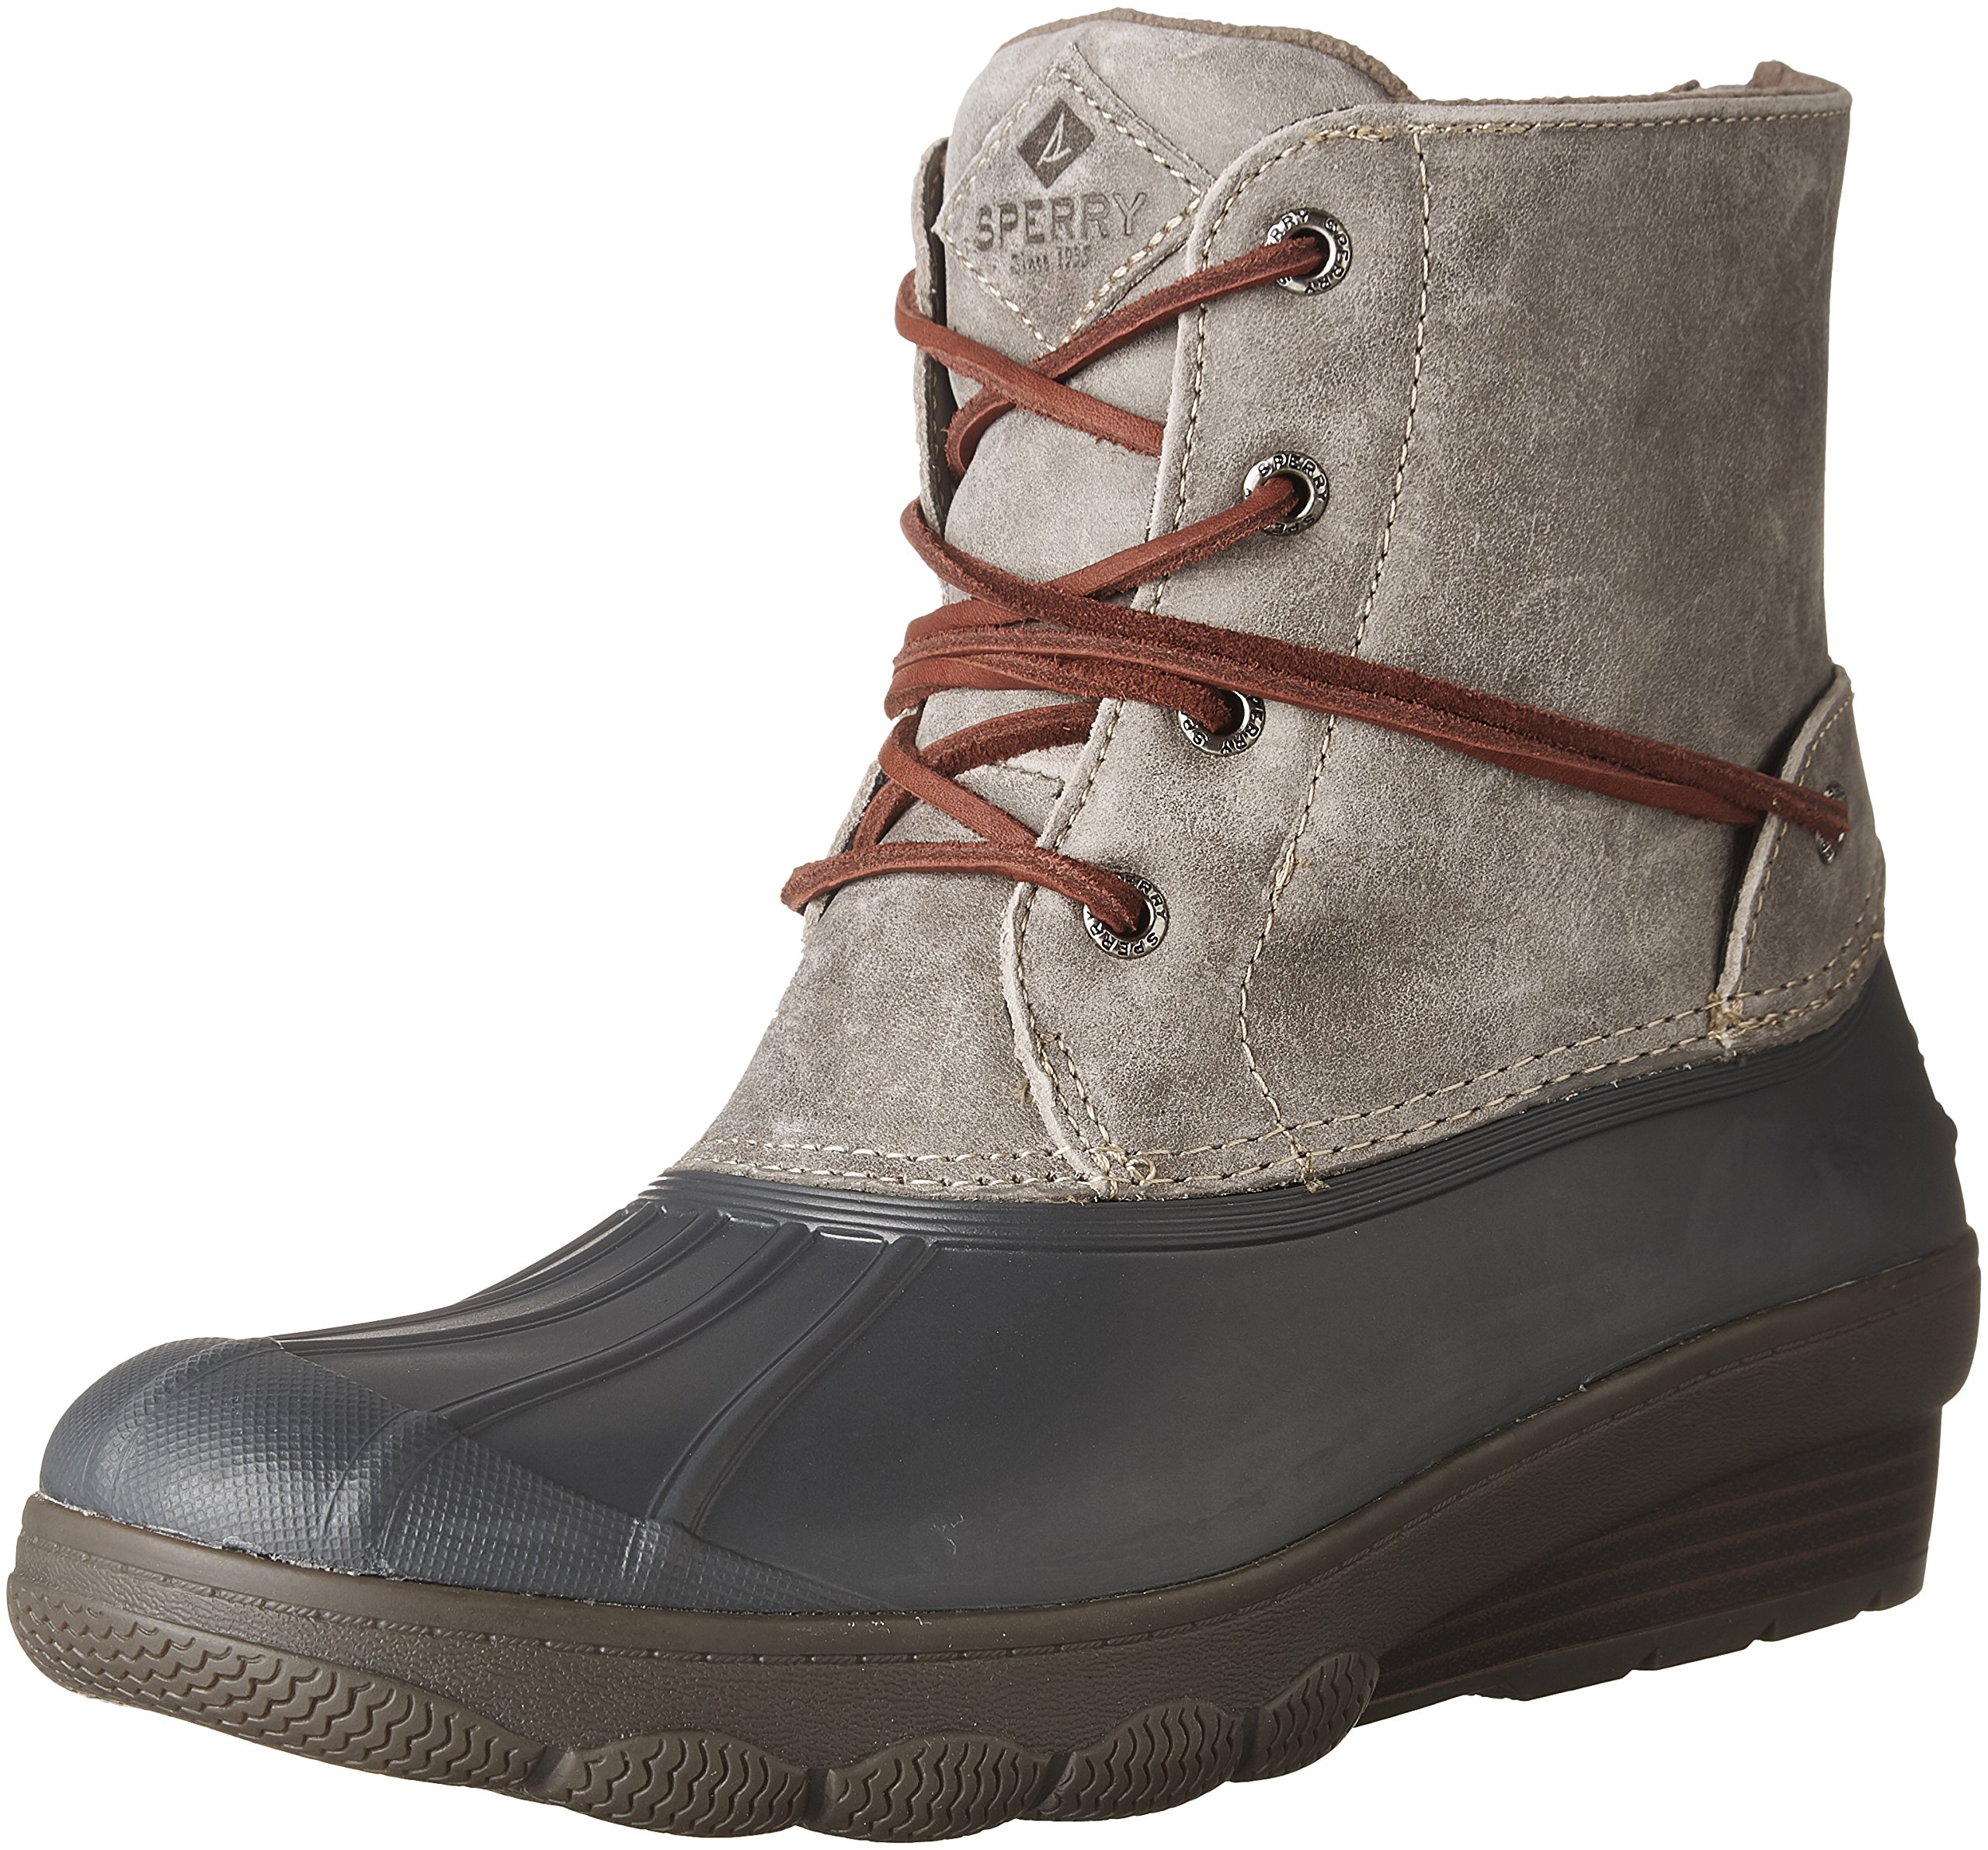 Sperry Top-Sider Women's Saltwater Wedge Tide Rain Boot, Grey, 8 Medium US by Sperry Top-Sider (Image #1)